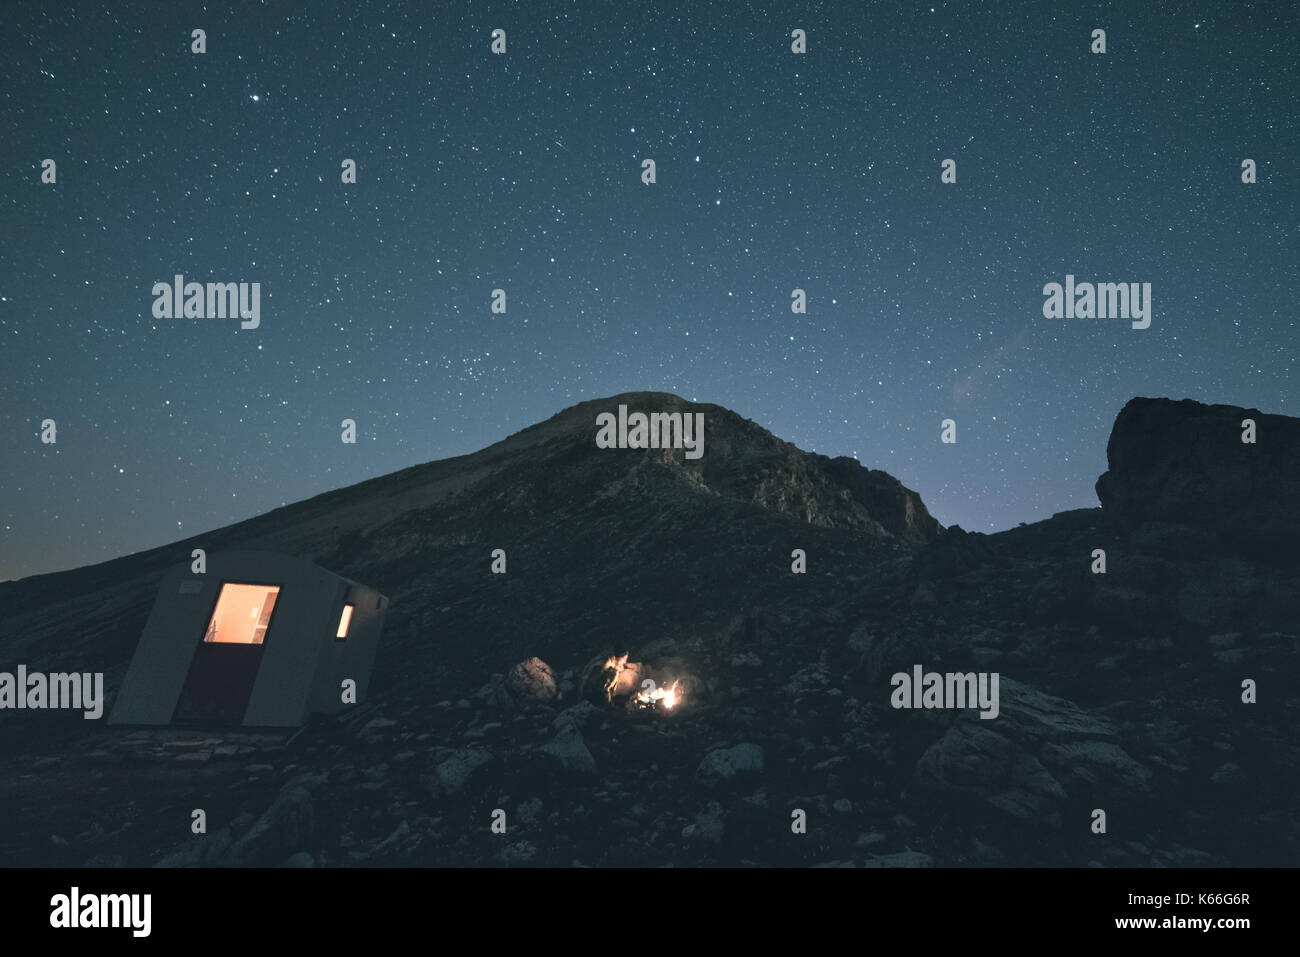 The Milky Way over the mountains, long exposure on the italian-french Alps, mountain hut and refuge illuminated. Toned image, vintage filter, split to - Stock Image